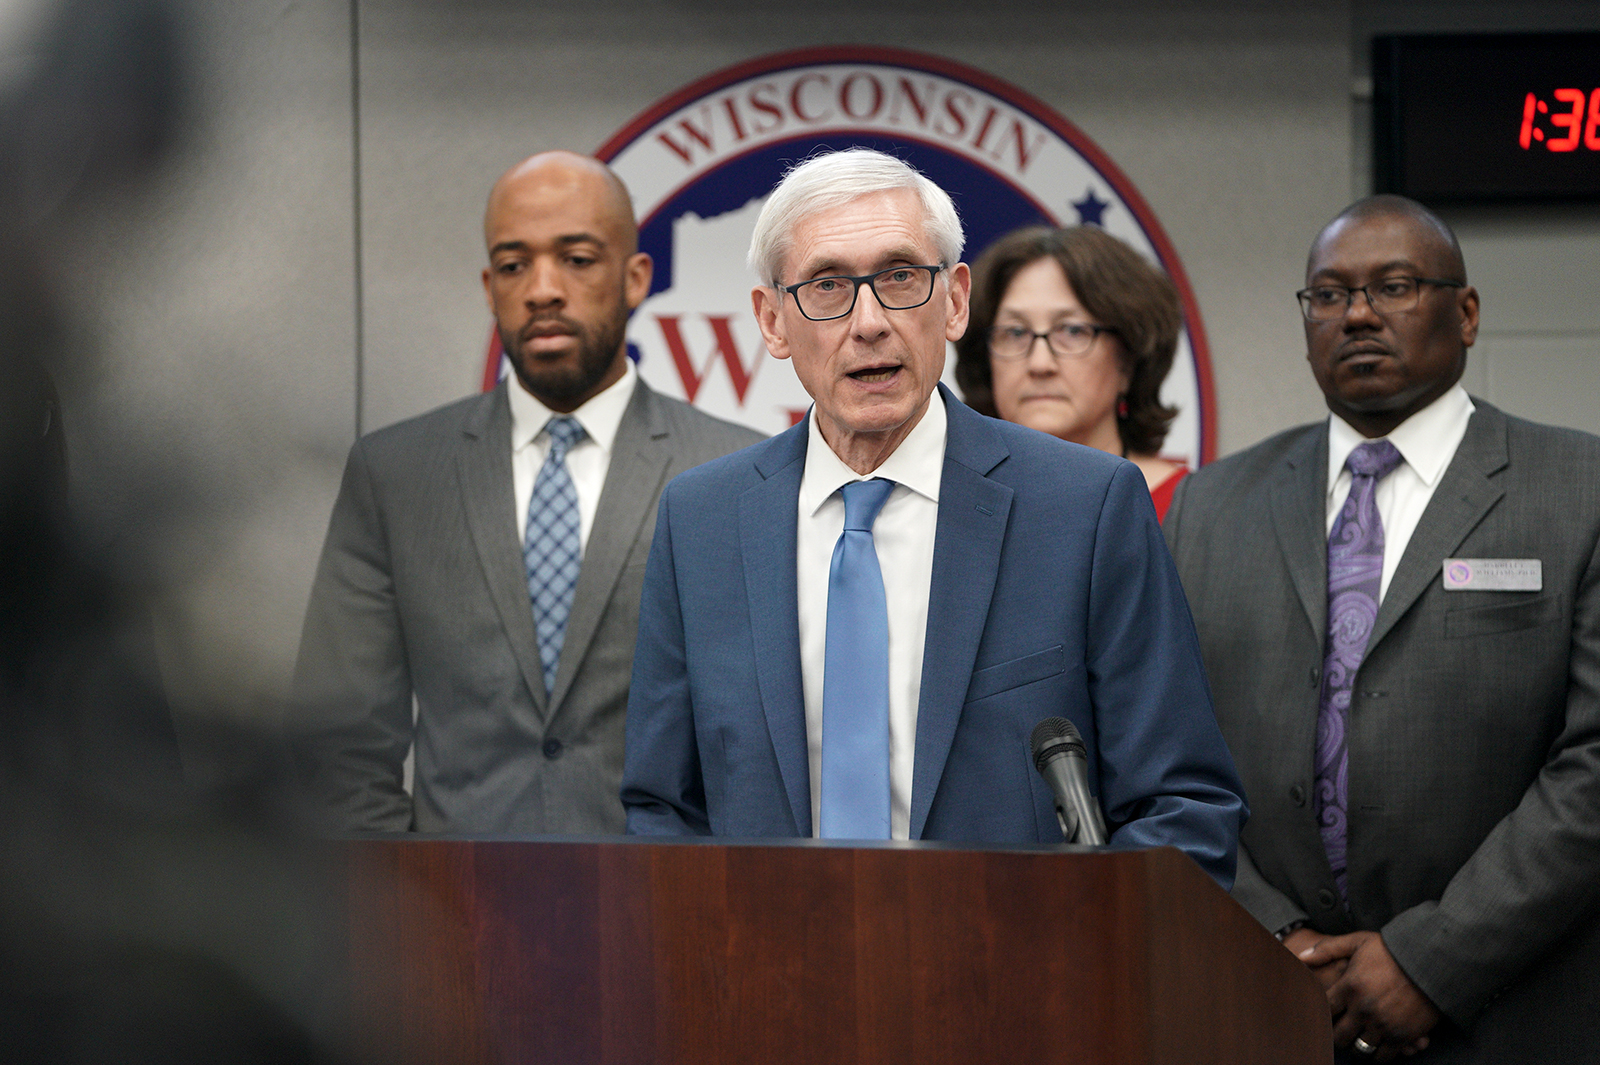 Gov. Tony Evers speaks at the Wisconsin Department of Military Affairs in the State Emergency Operations Center in Madison, Wisconsin, on March 12.